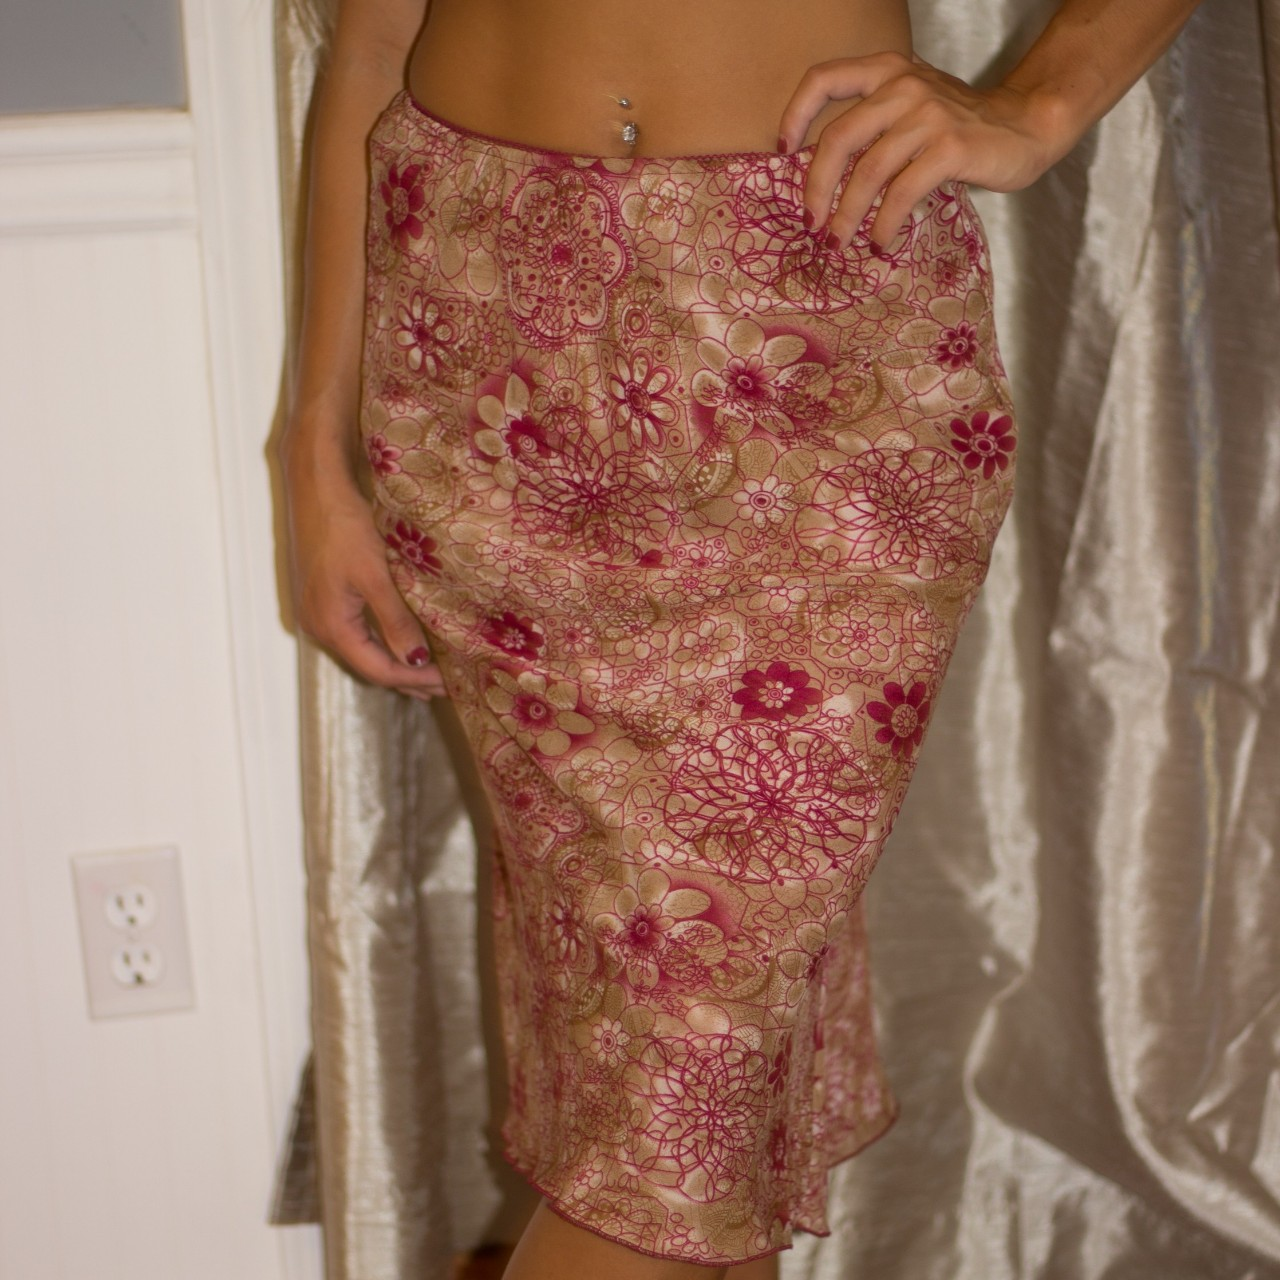 Product Image 1 - 90s Floral Patterned Skirt. This is